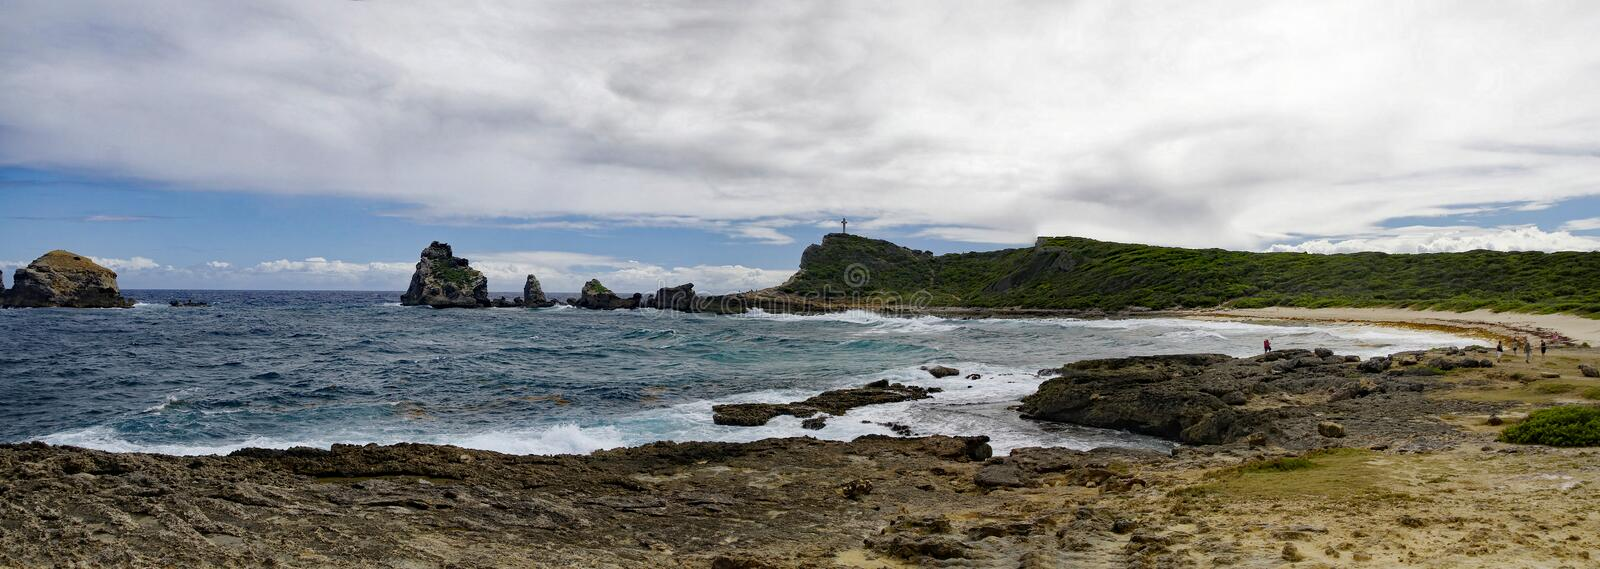 La Pointe des Chateaux Castles headland is a peninsula that extends into the Atlantic Ocean, Guadeloupe. La Pointe des Chateaux Castles headland is a peninsula royalty free stock photo